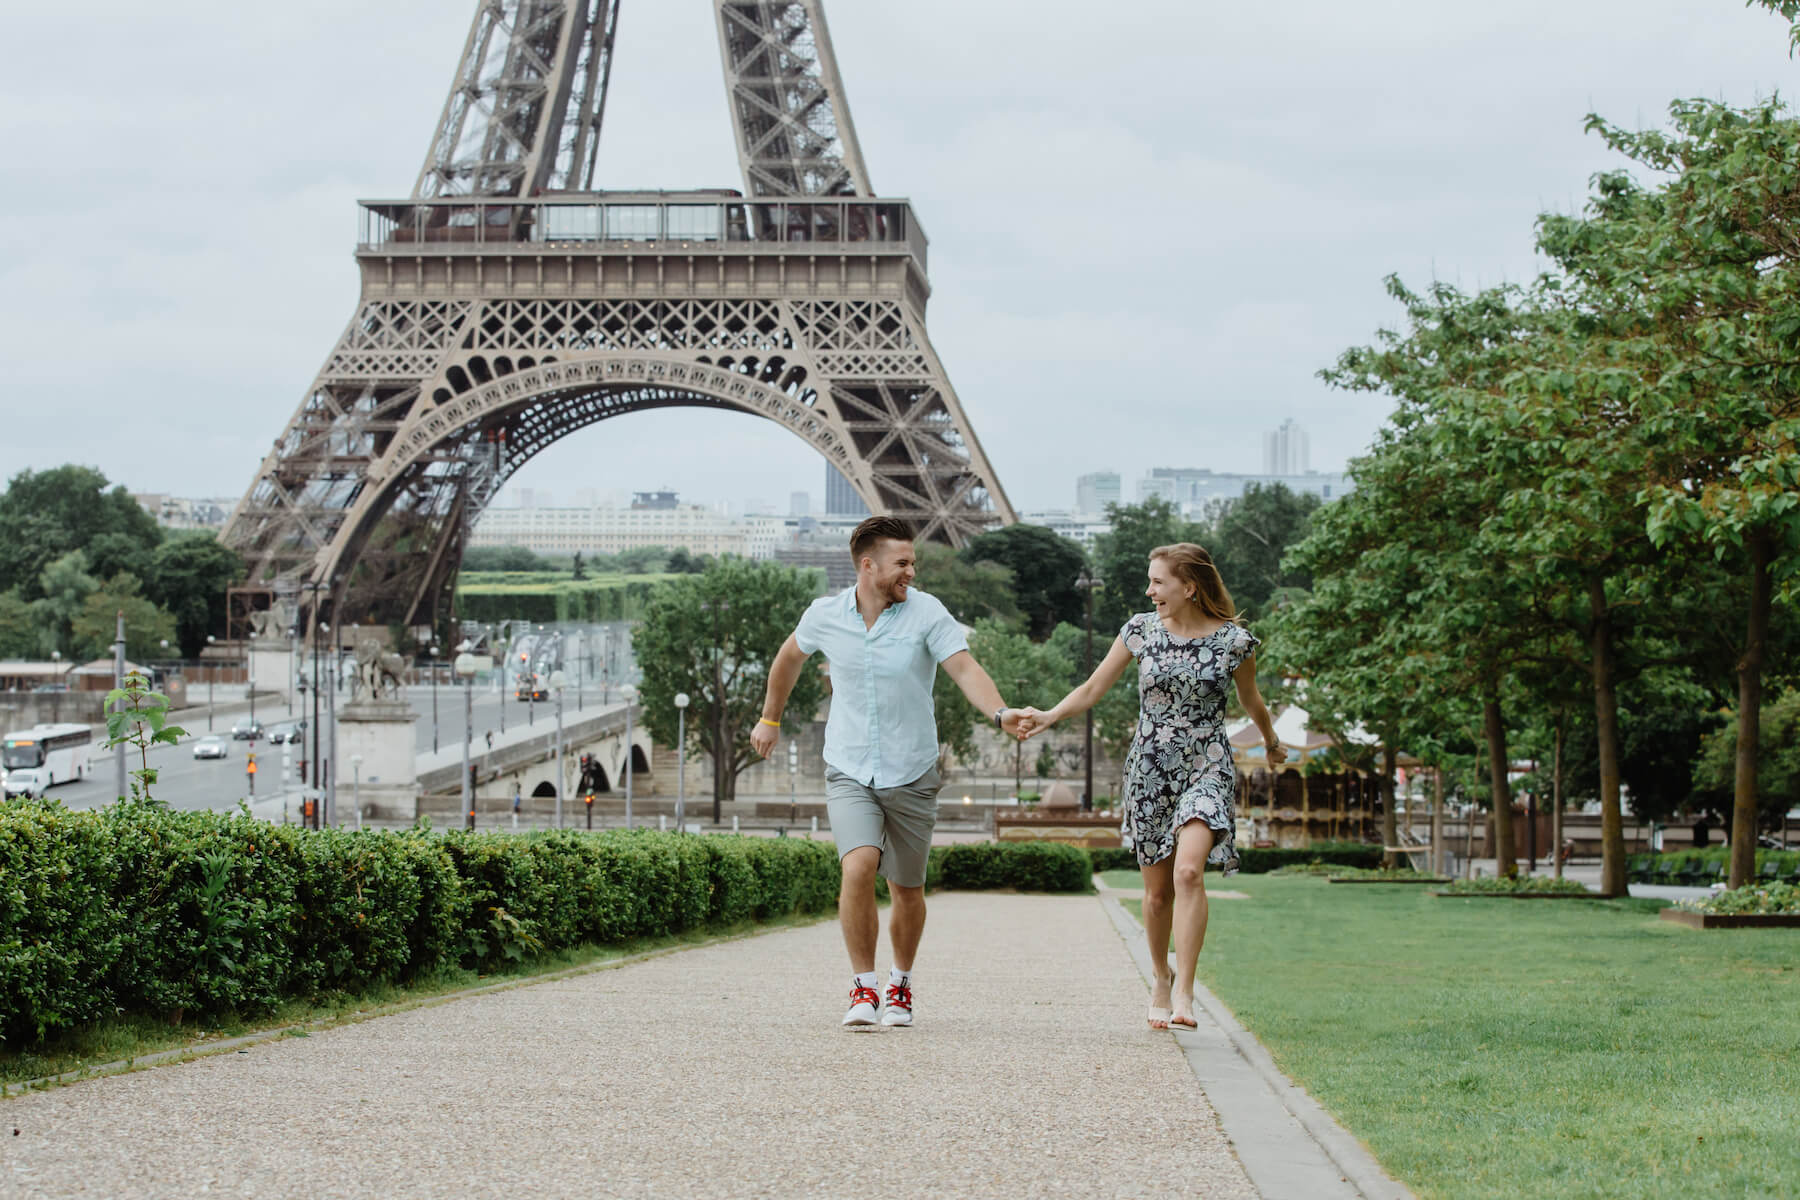 couple holding hands skipping and laughing in front of the Eiffel Tower, Paris, France